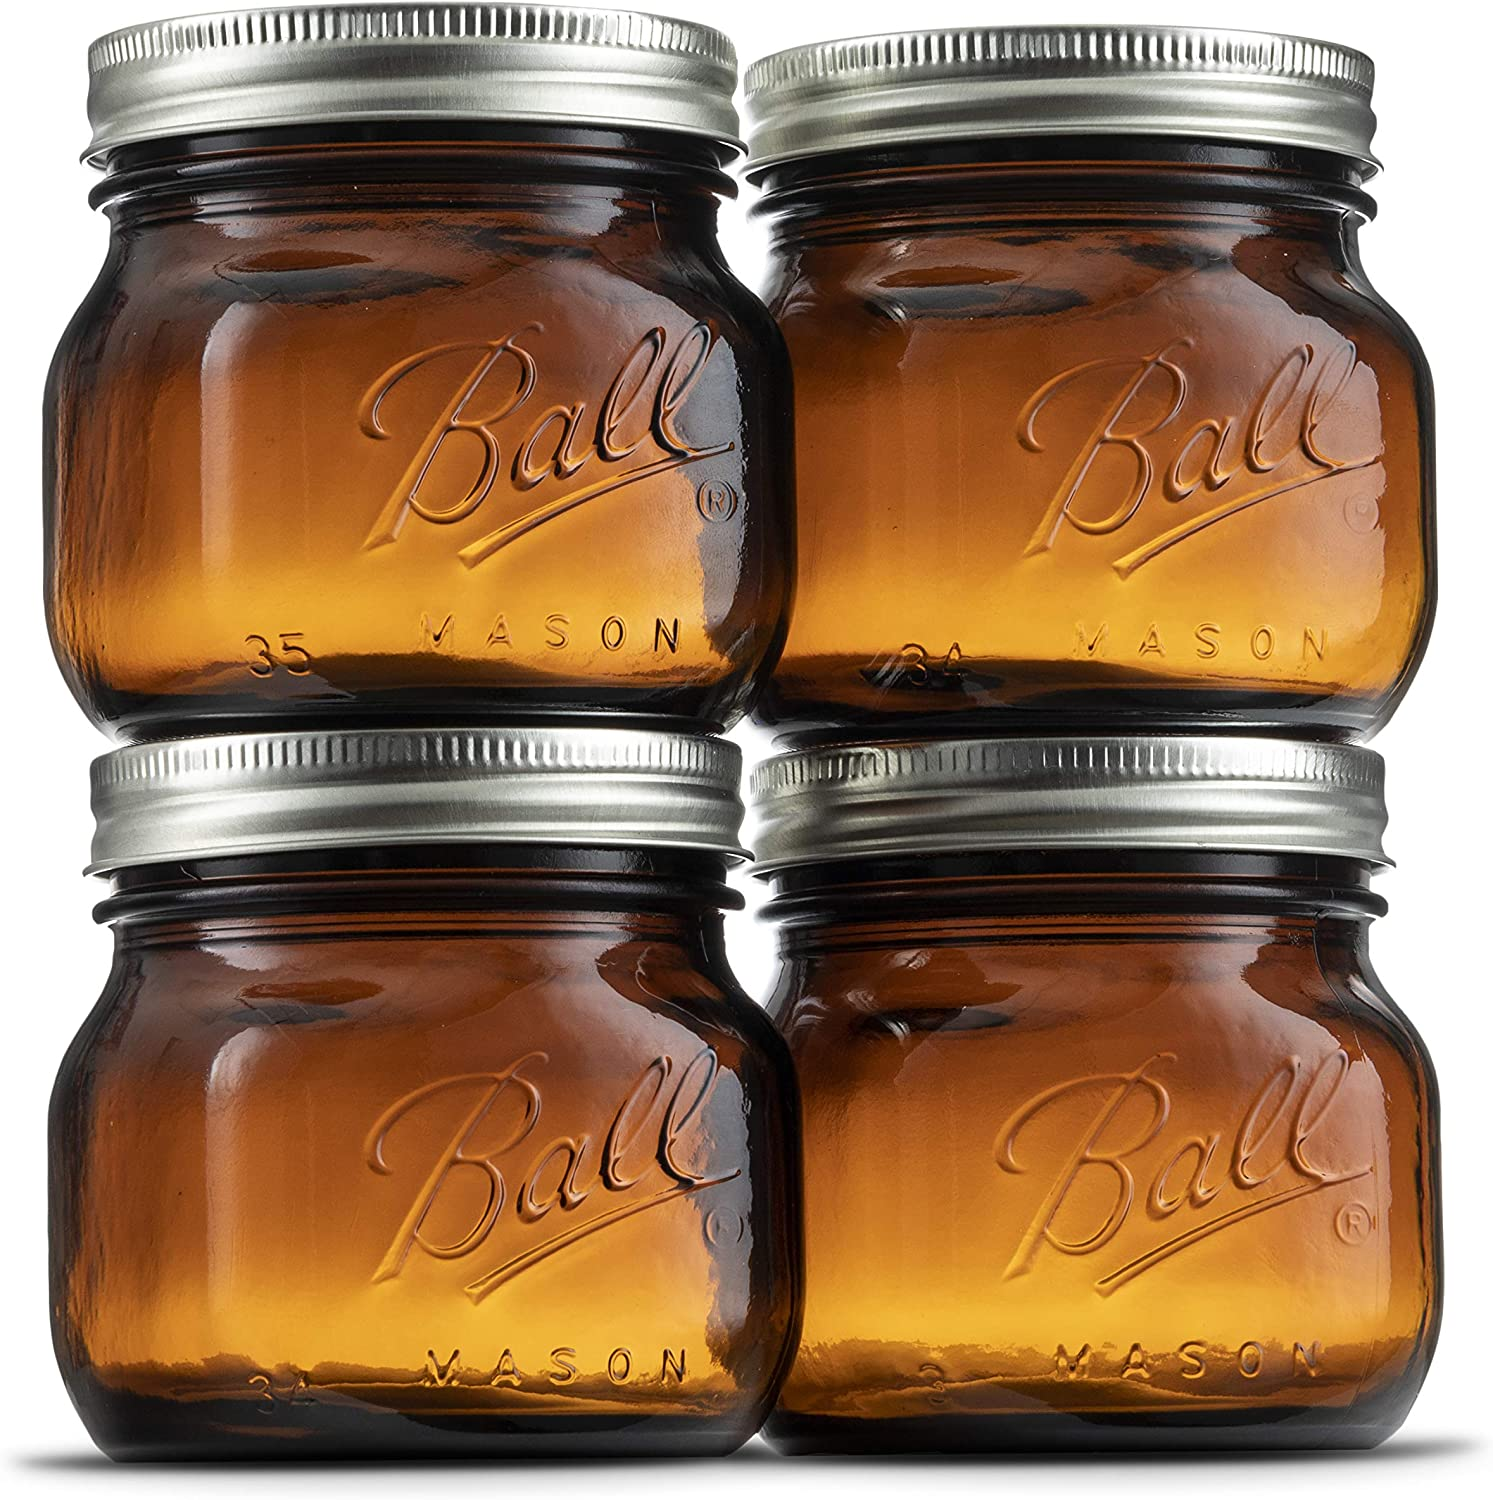 Ball Amber Glass Wide Mouth Mason Jars (16 oz/Pint) With Airtight lids and Bands [4 Pack] Amber Canning Jars - Microwave & Dishwasher Safe. Bundled With SEWANTA Jar Opener